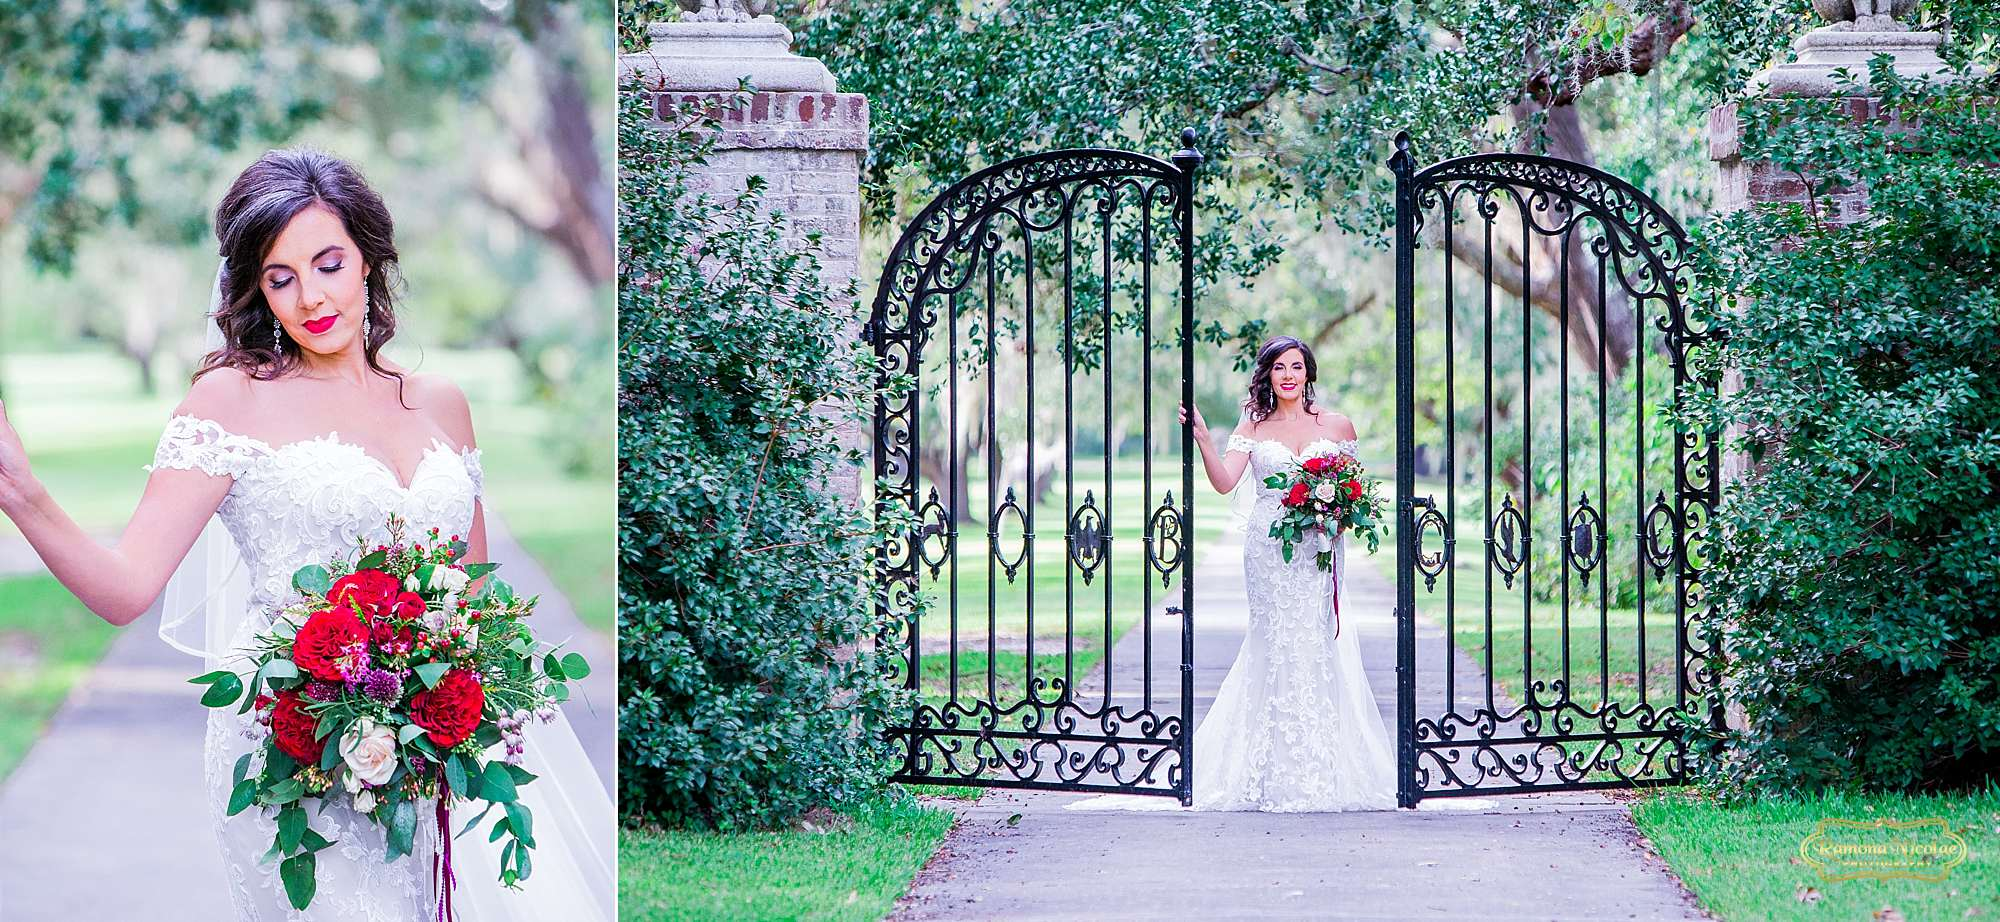 bride with red flowers by the black B & G gates at Brookgreen Gardens looking gorgeous during bridal session with ramona nicolae photography-8.jpg